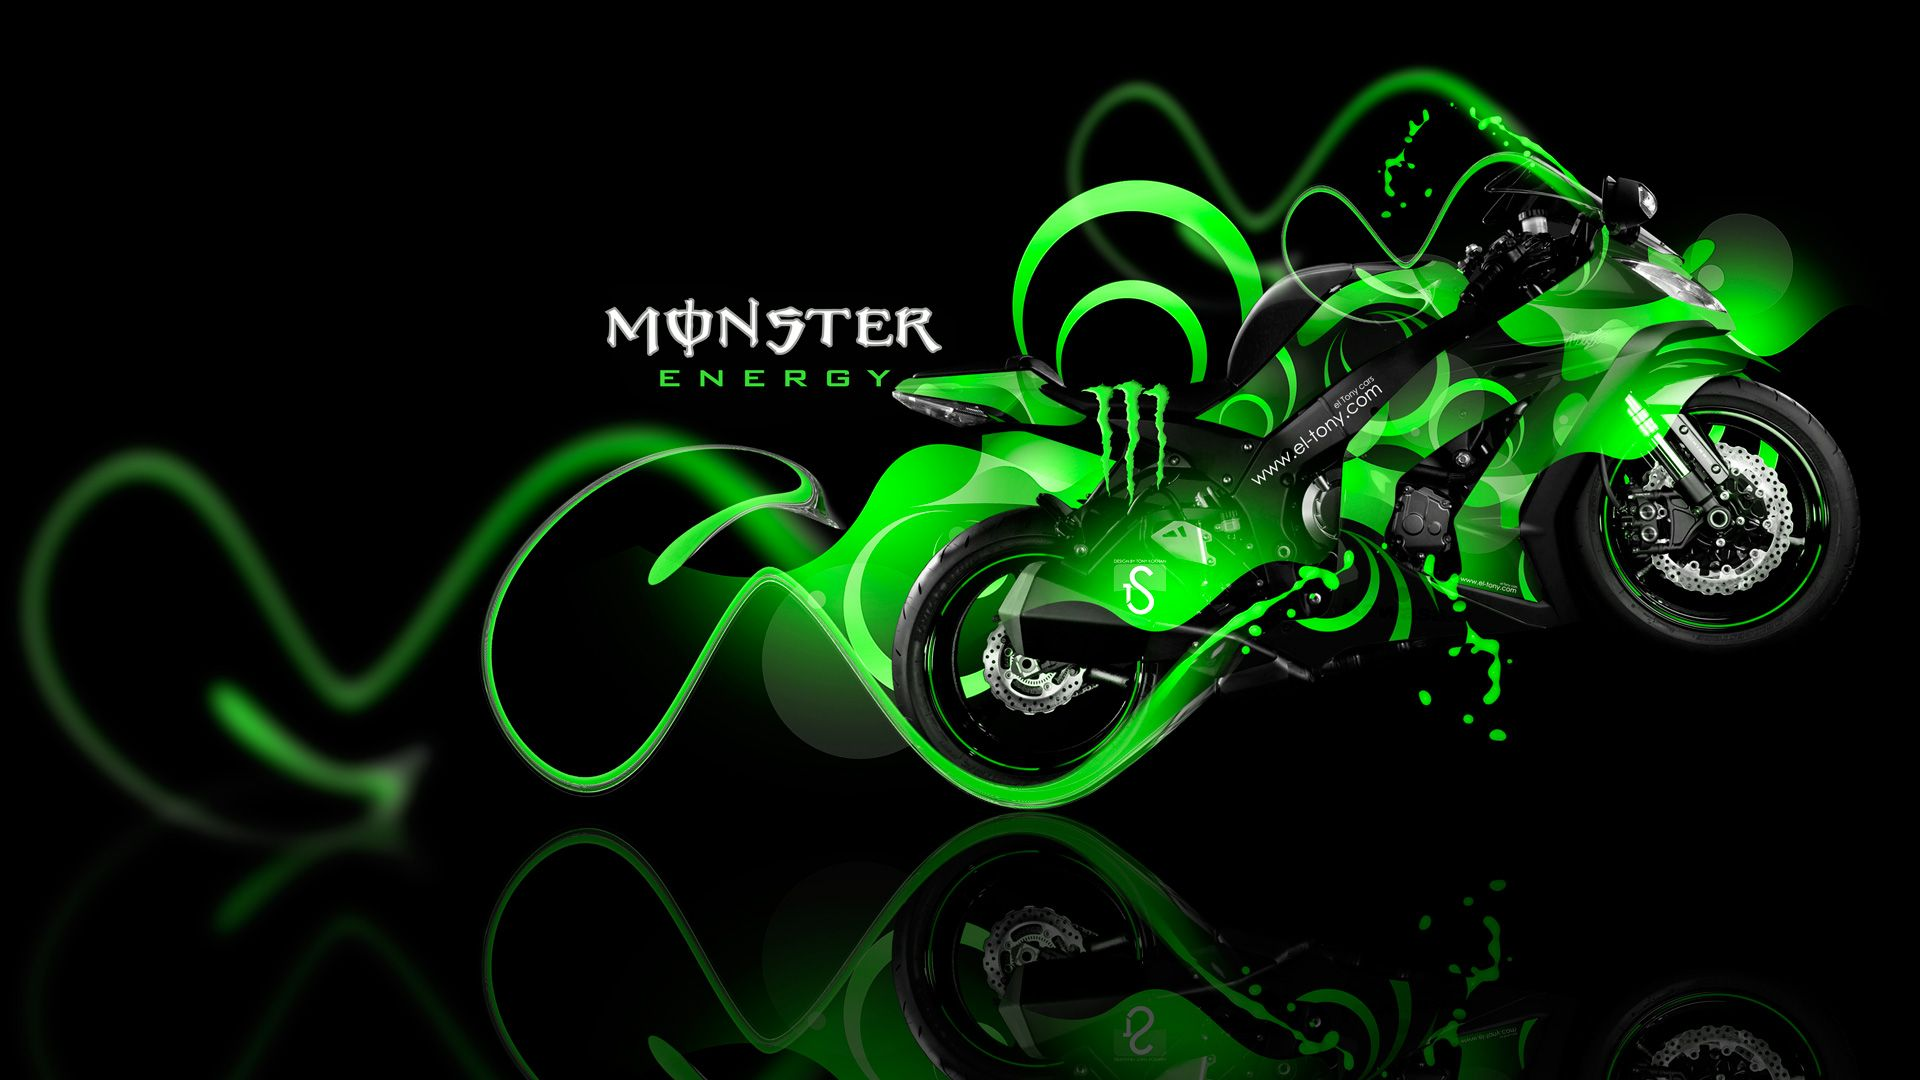 Monster Energy Wallpapers Top Free Monster Energy